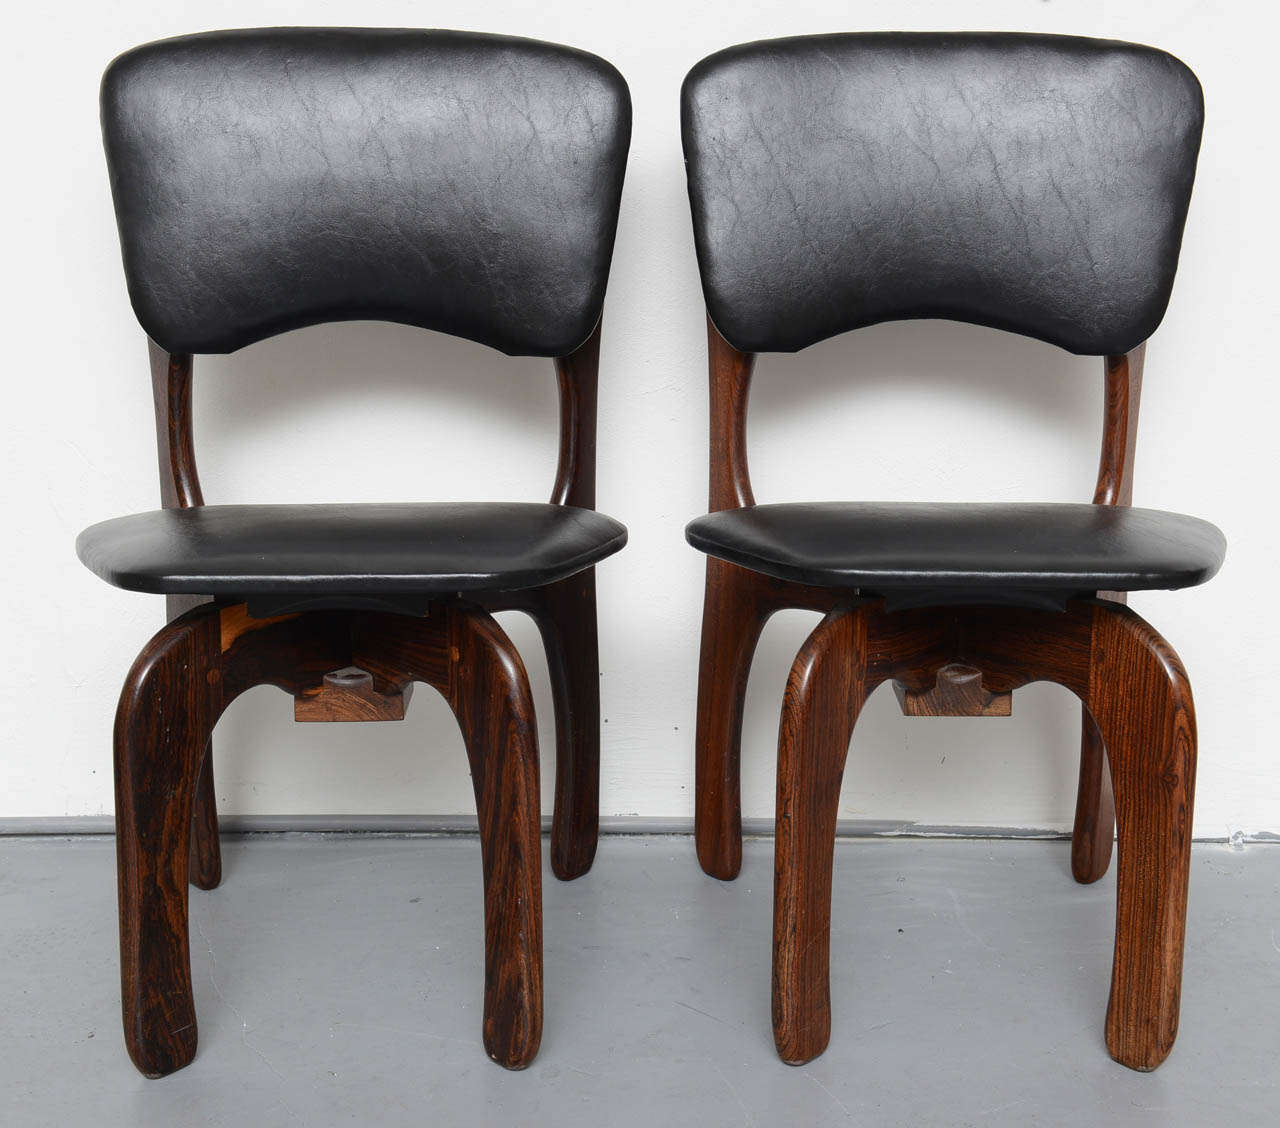 1970s Rosewood Chairs by Don Shoemaker, Mexico 2